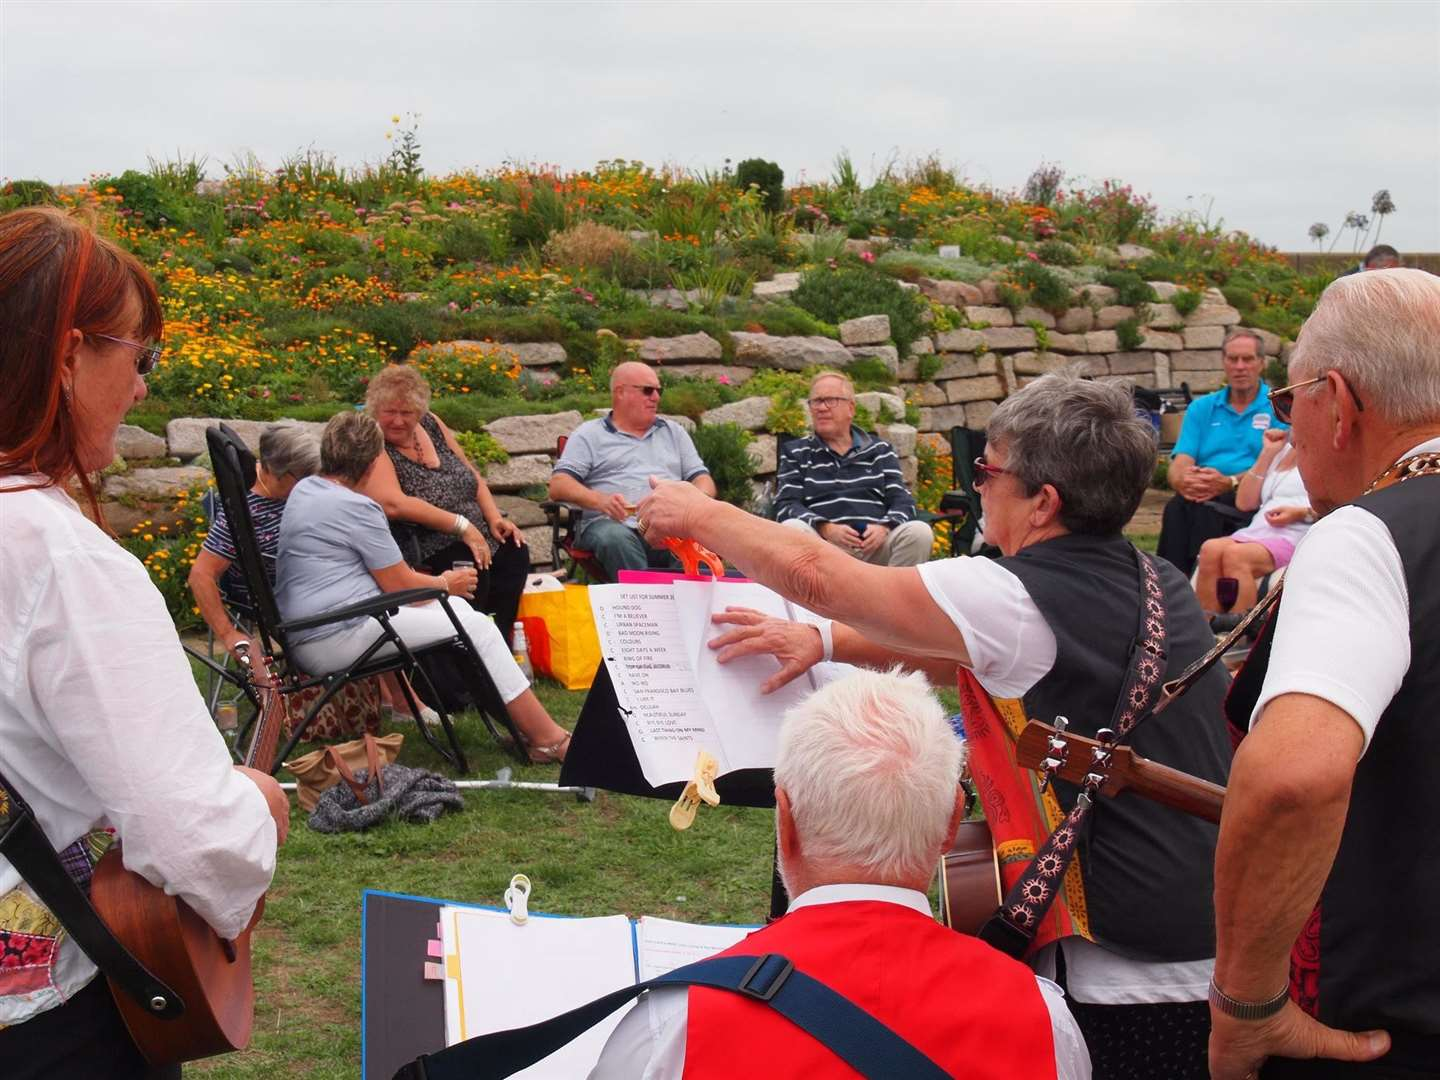 Sandown Community Garden Group relies on fundraising like this picnic in 2017